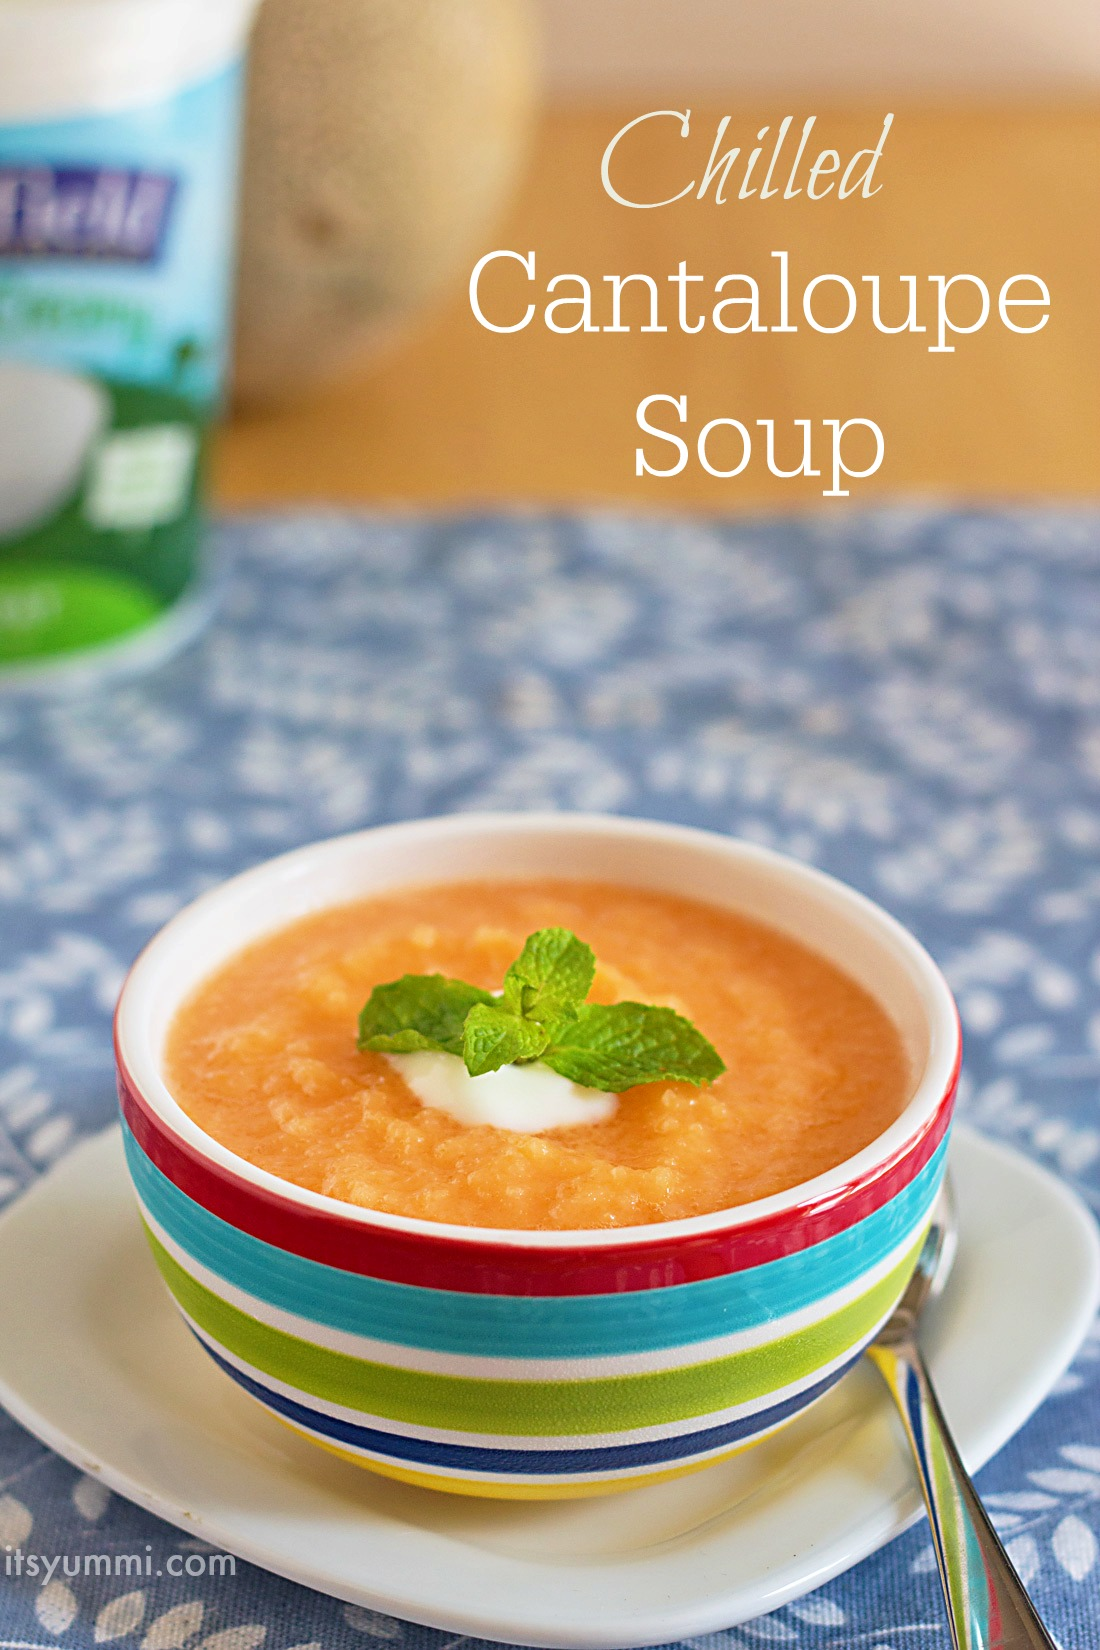 Chilled Cantaloupe Soup Recipe from ItsYummi.com